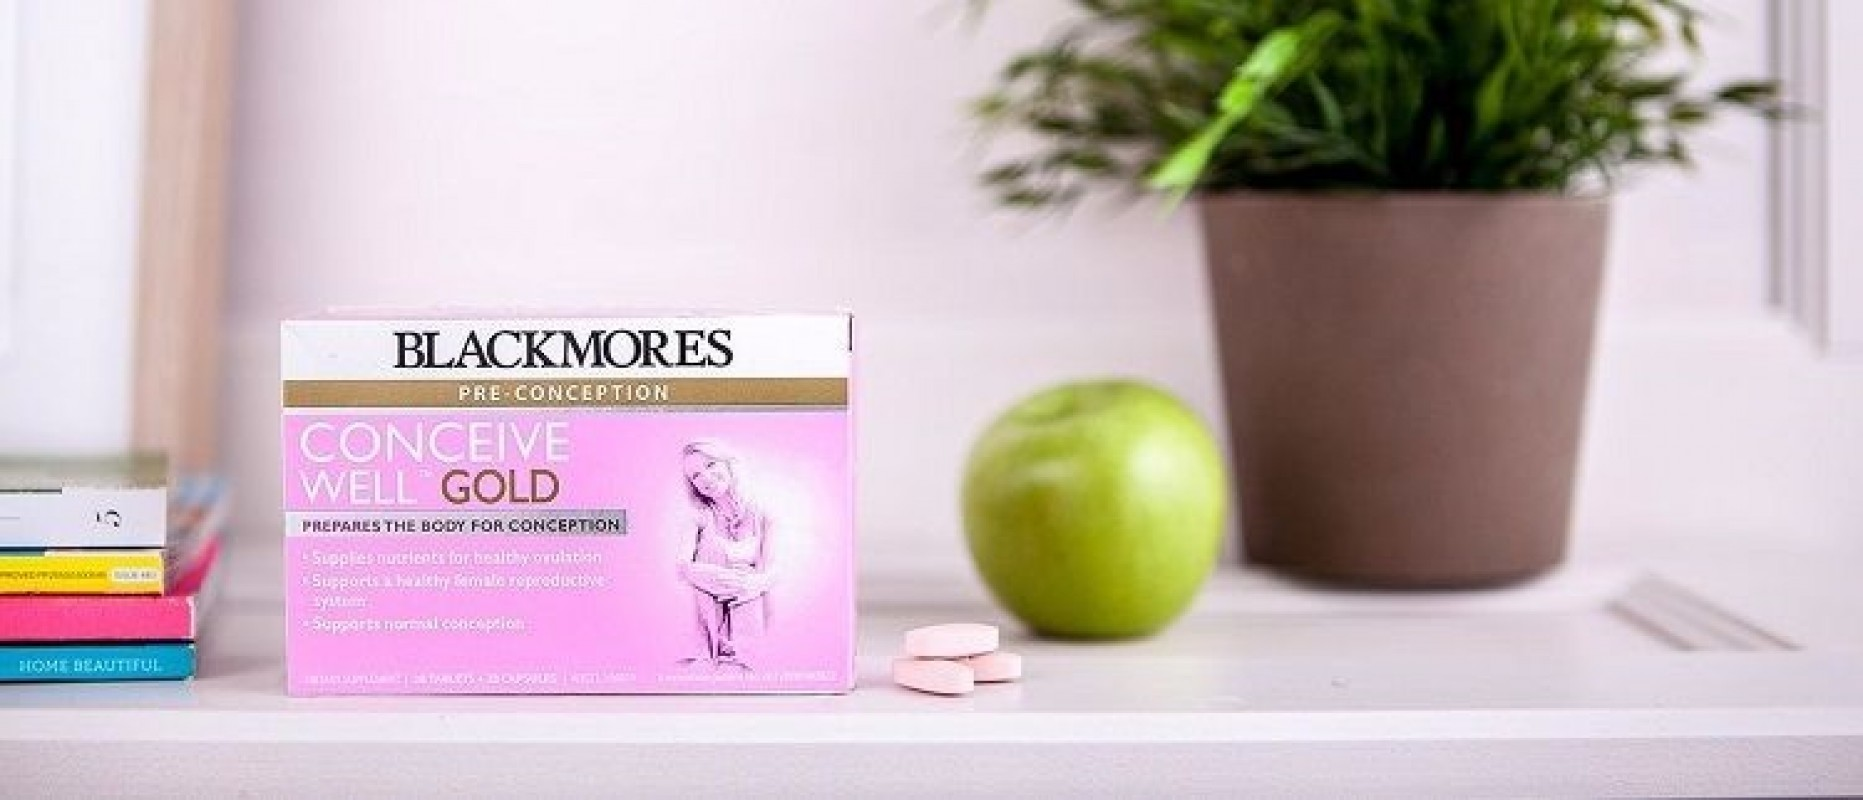 Review Thuốc Blackmores Conceive Well Gold